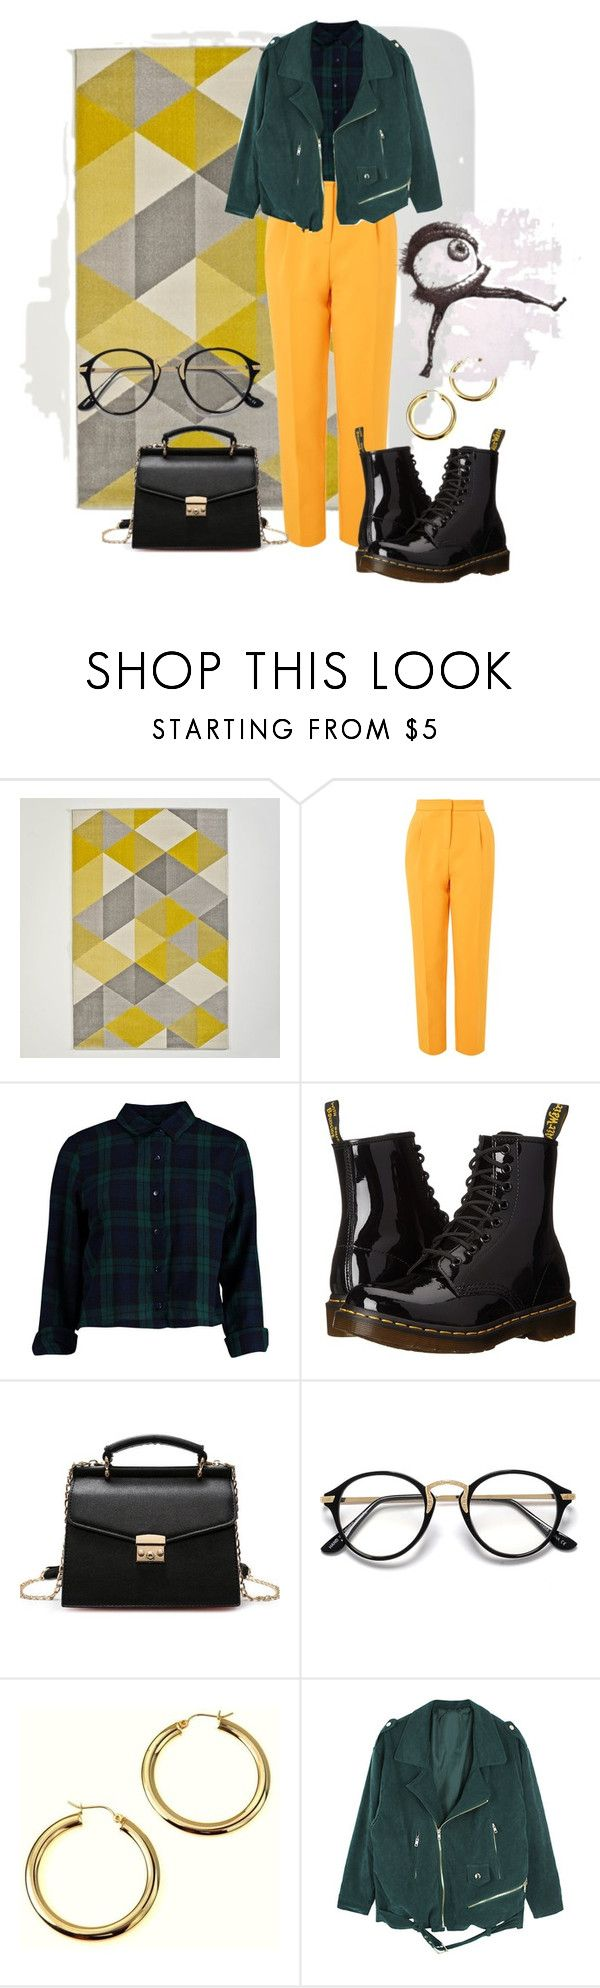 """bright pants"" by nover on Polyvore featuring Topshop, Boohoo and Dr. Martens"